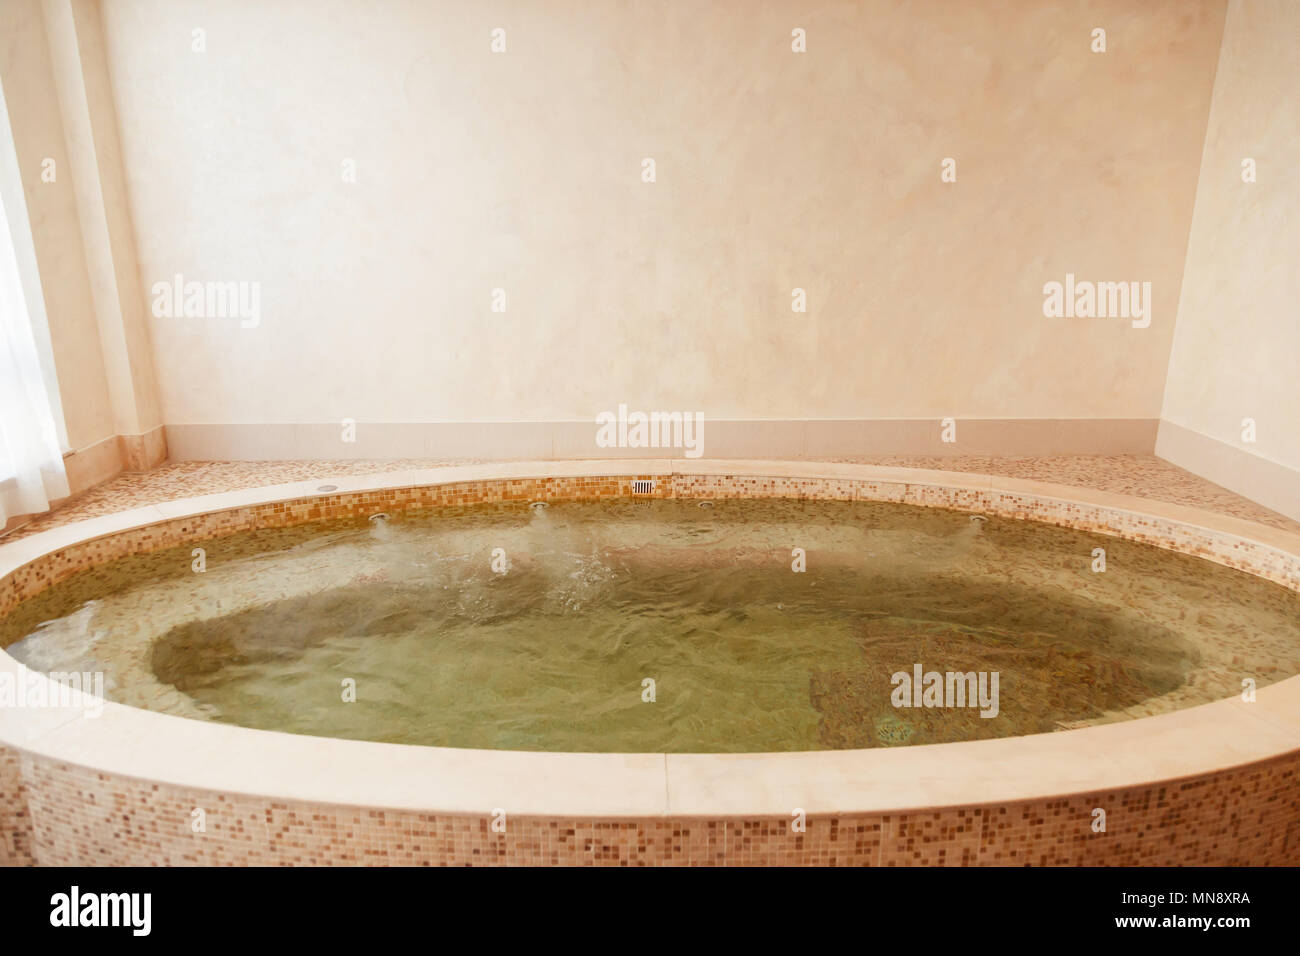 Jacuzzi baths in hotel spa center Stock Photo: 185208110 - Alamy